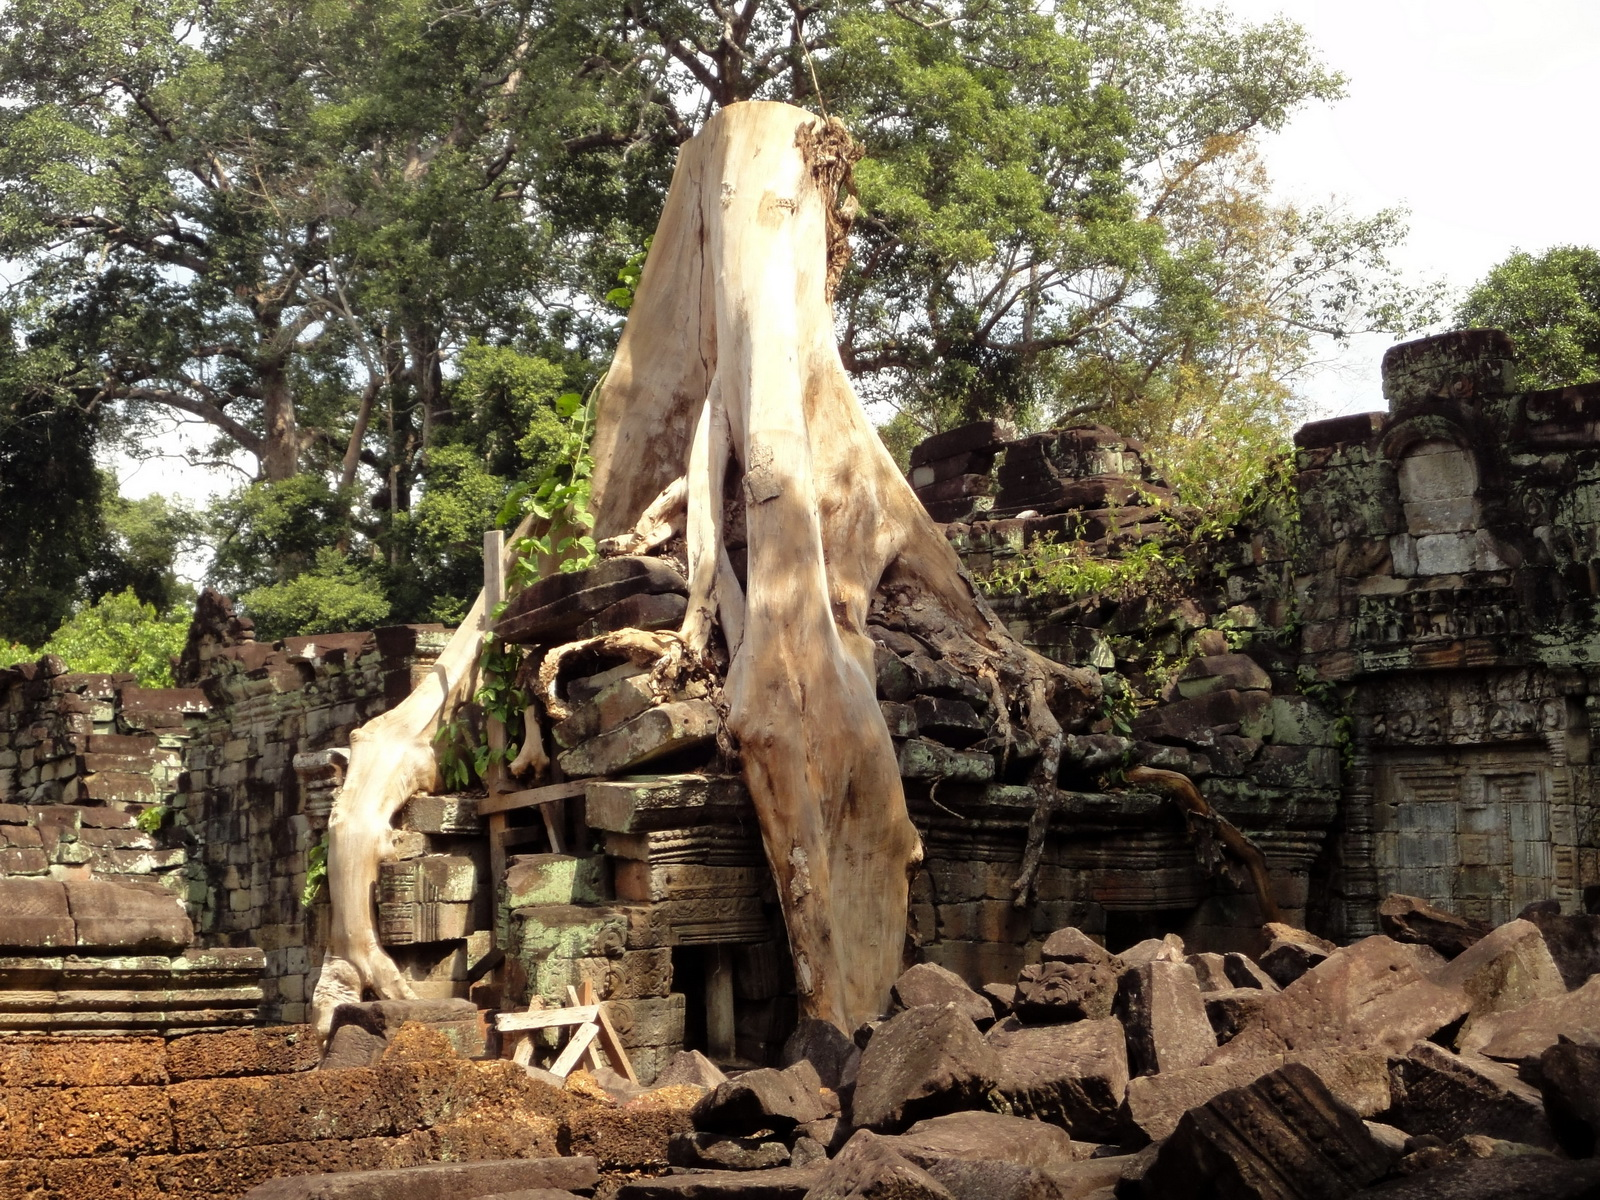 Preah Khan Temple laterite walls overtaken by giant strangler fig trees 12